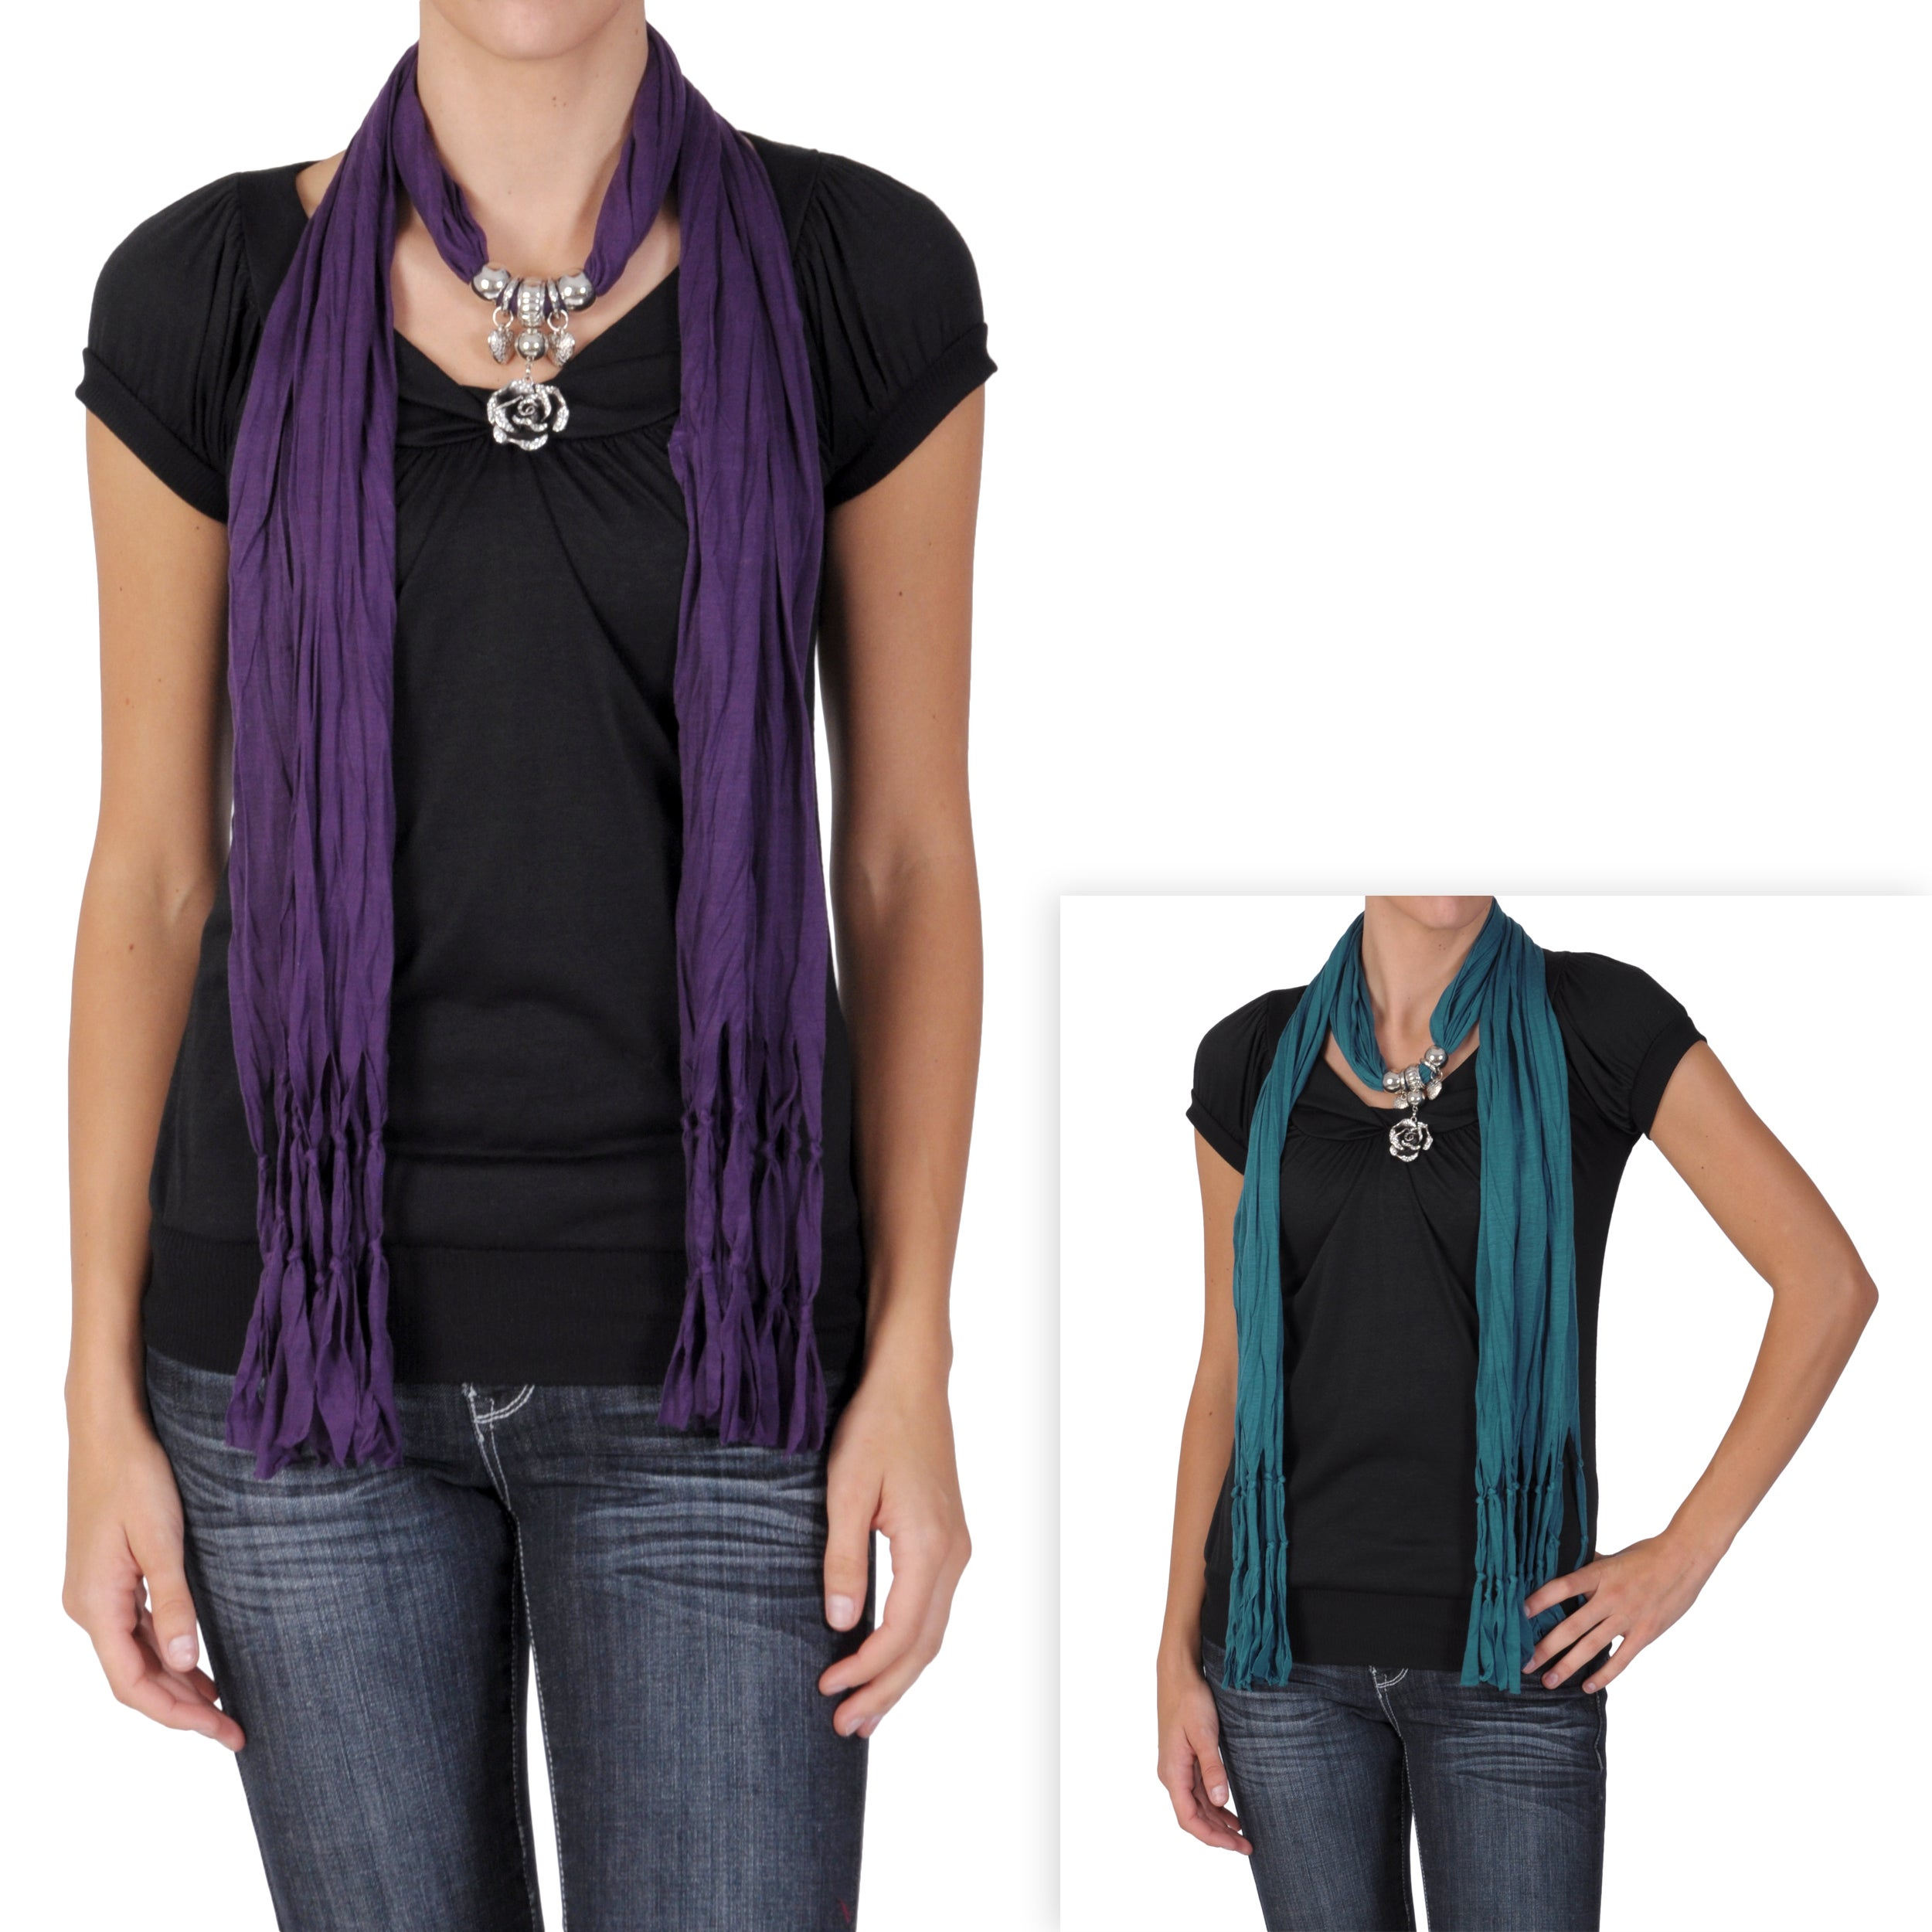 Journee Collection Women's Rose Charm Fashion Scarf